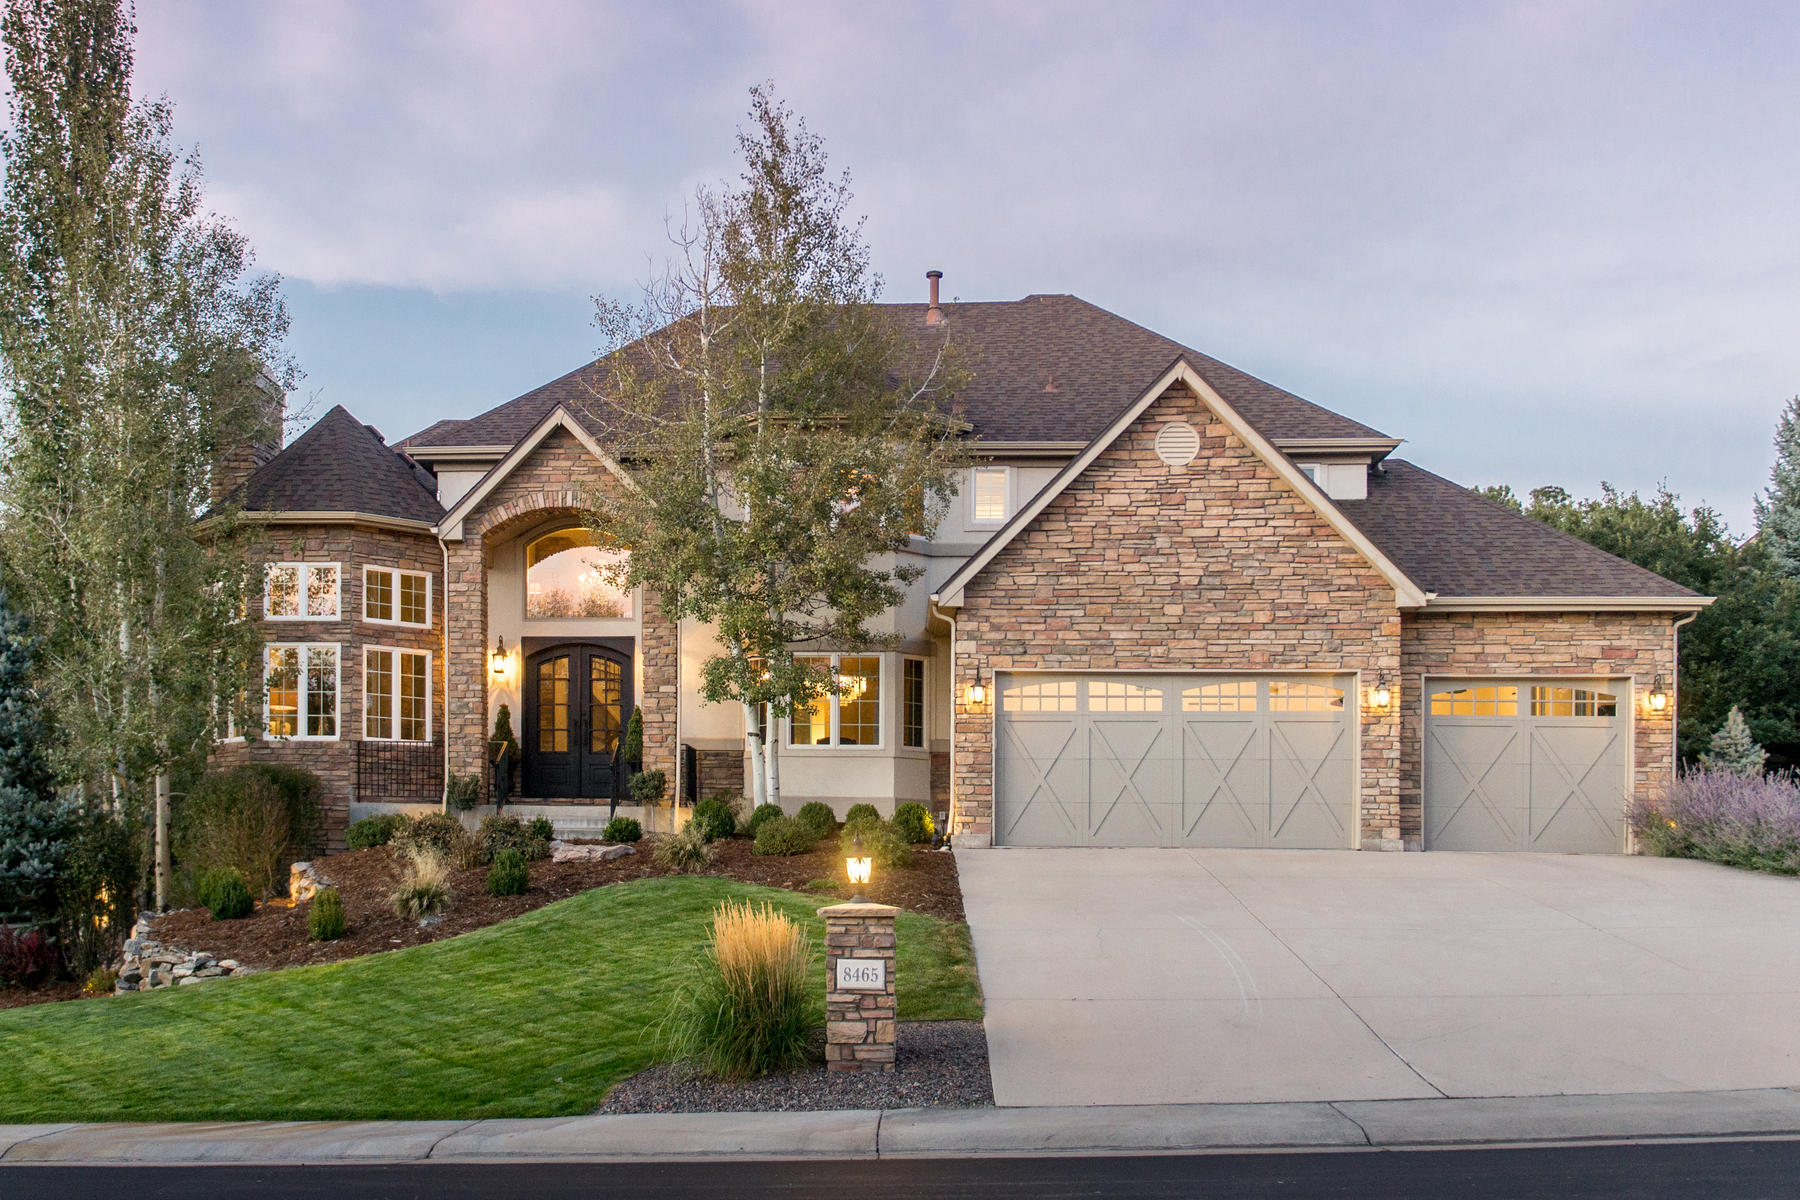 Single Family Home for Active at The Timbers 8465 Windhaven Dr Parker, Colorado 80134 United States